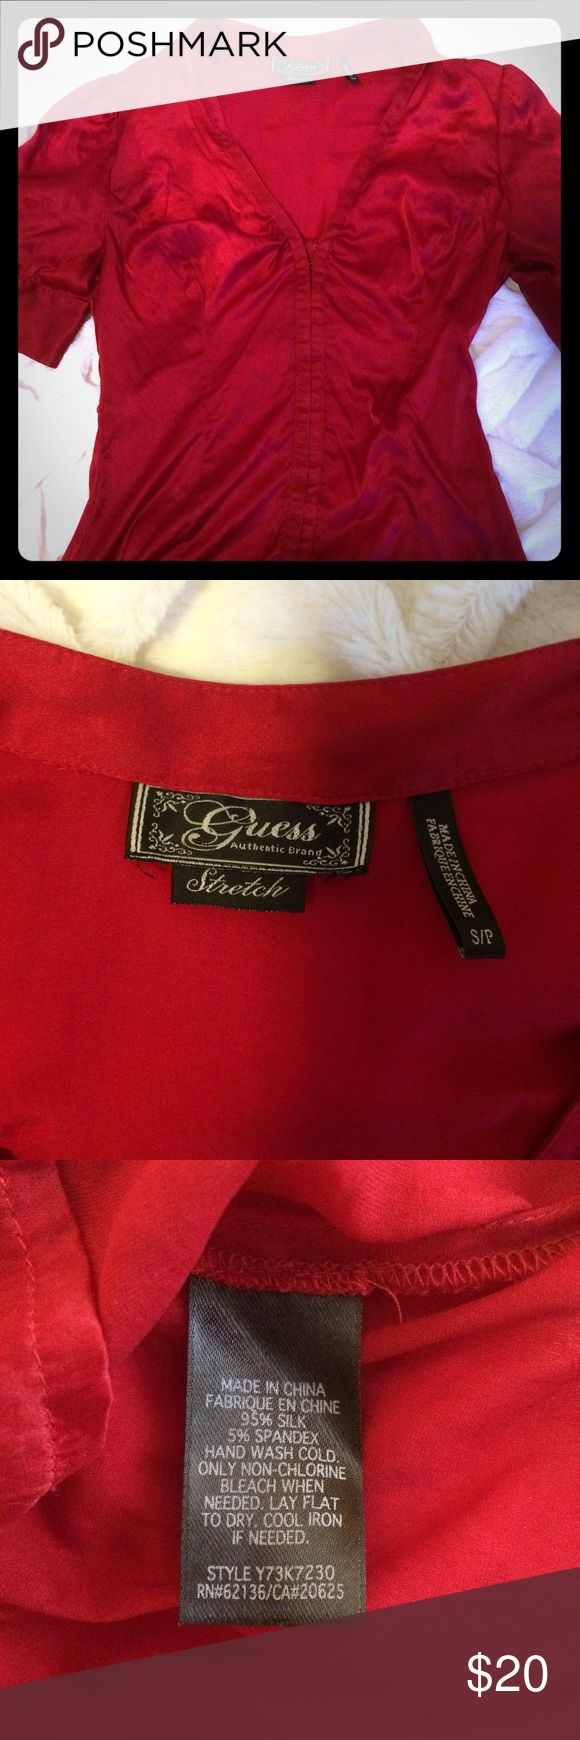 ONE DAY SALE Guess 1/2 sleeve silk top Bright red, 98% silk Guess top. Corset closure on front. V neck. Guess Tops Blouses